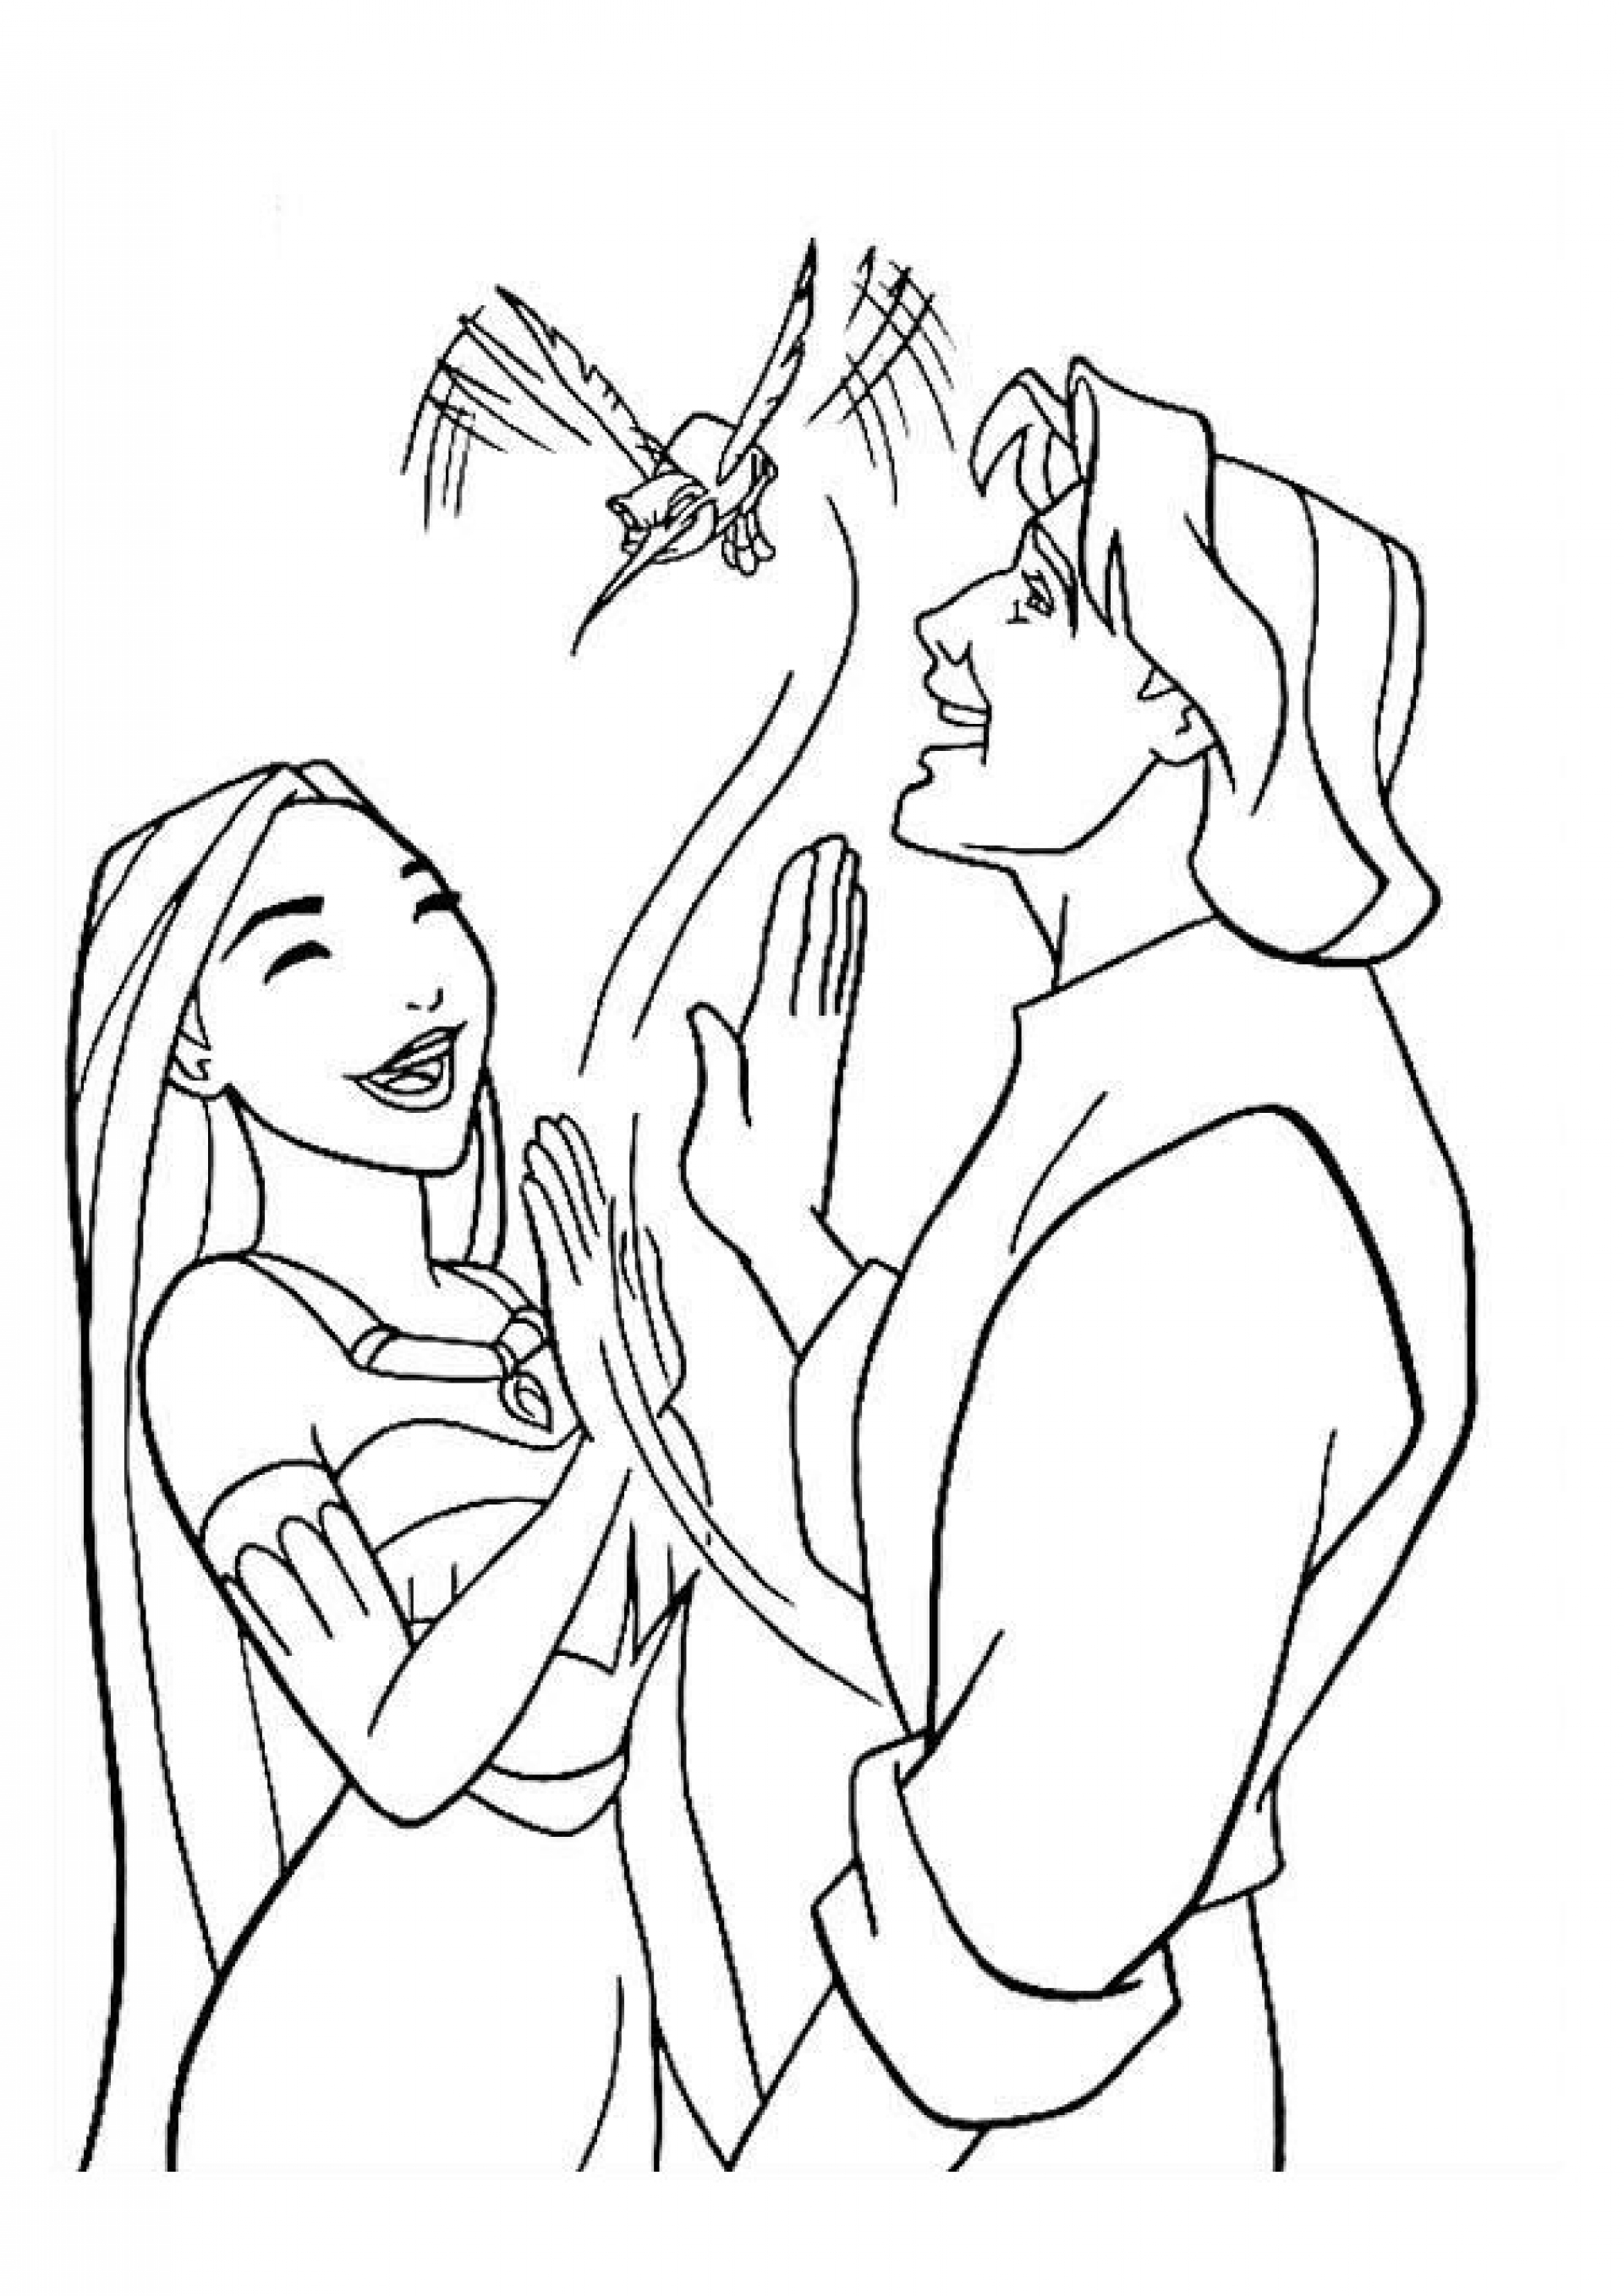 Uncategorized Pocahontas Colouring Pages printable pocahontas coloring pages me for kids